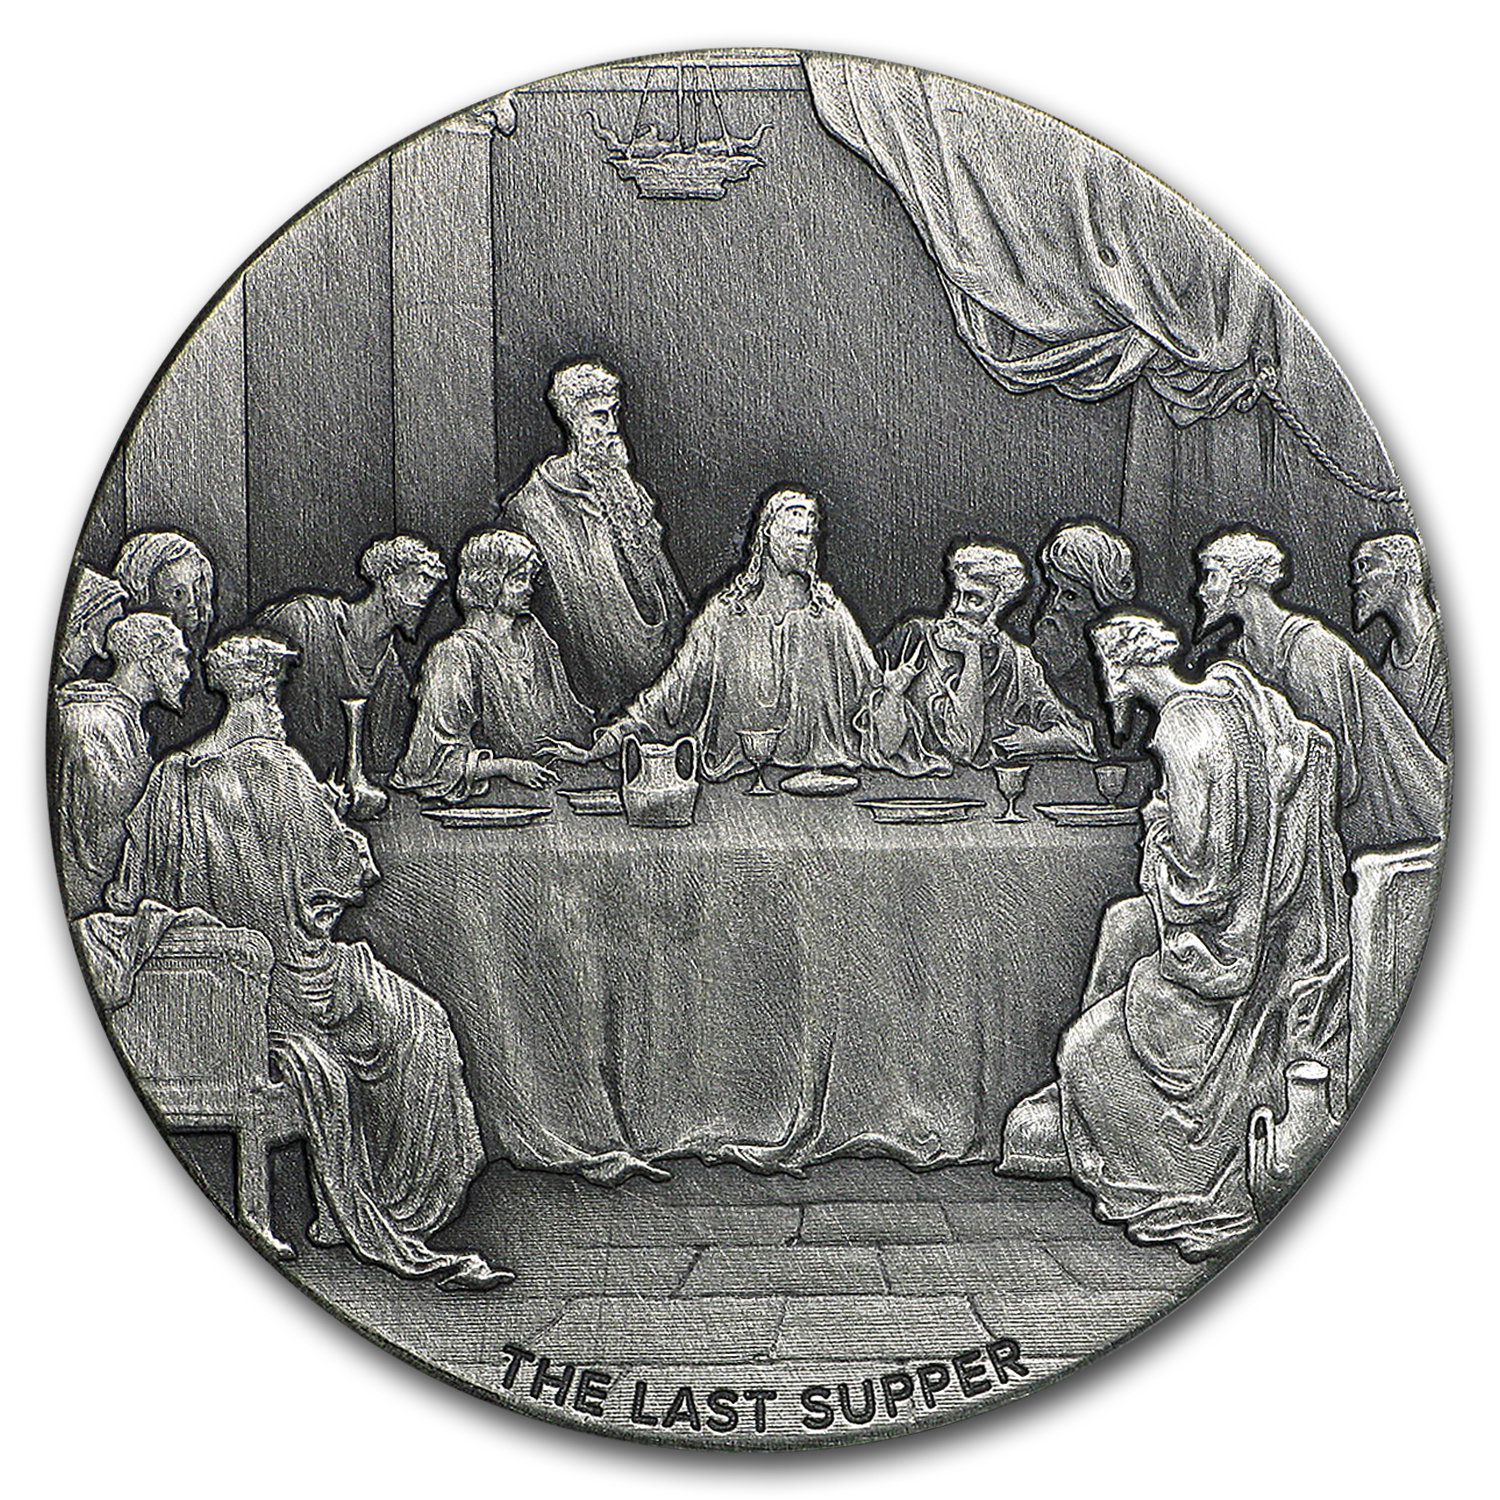 2 oz Silver Coin - Biblical Series (The Last Supper)